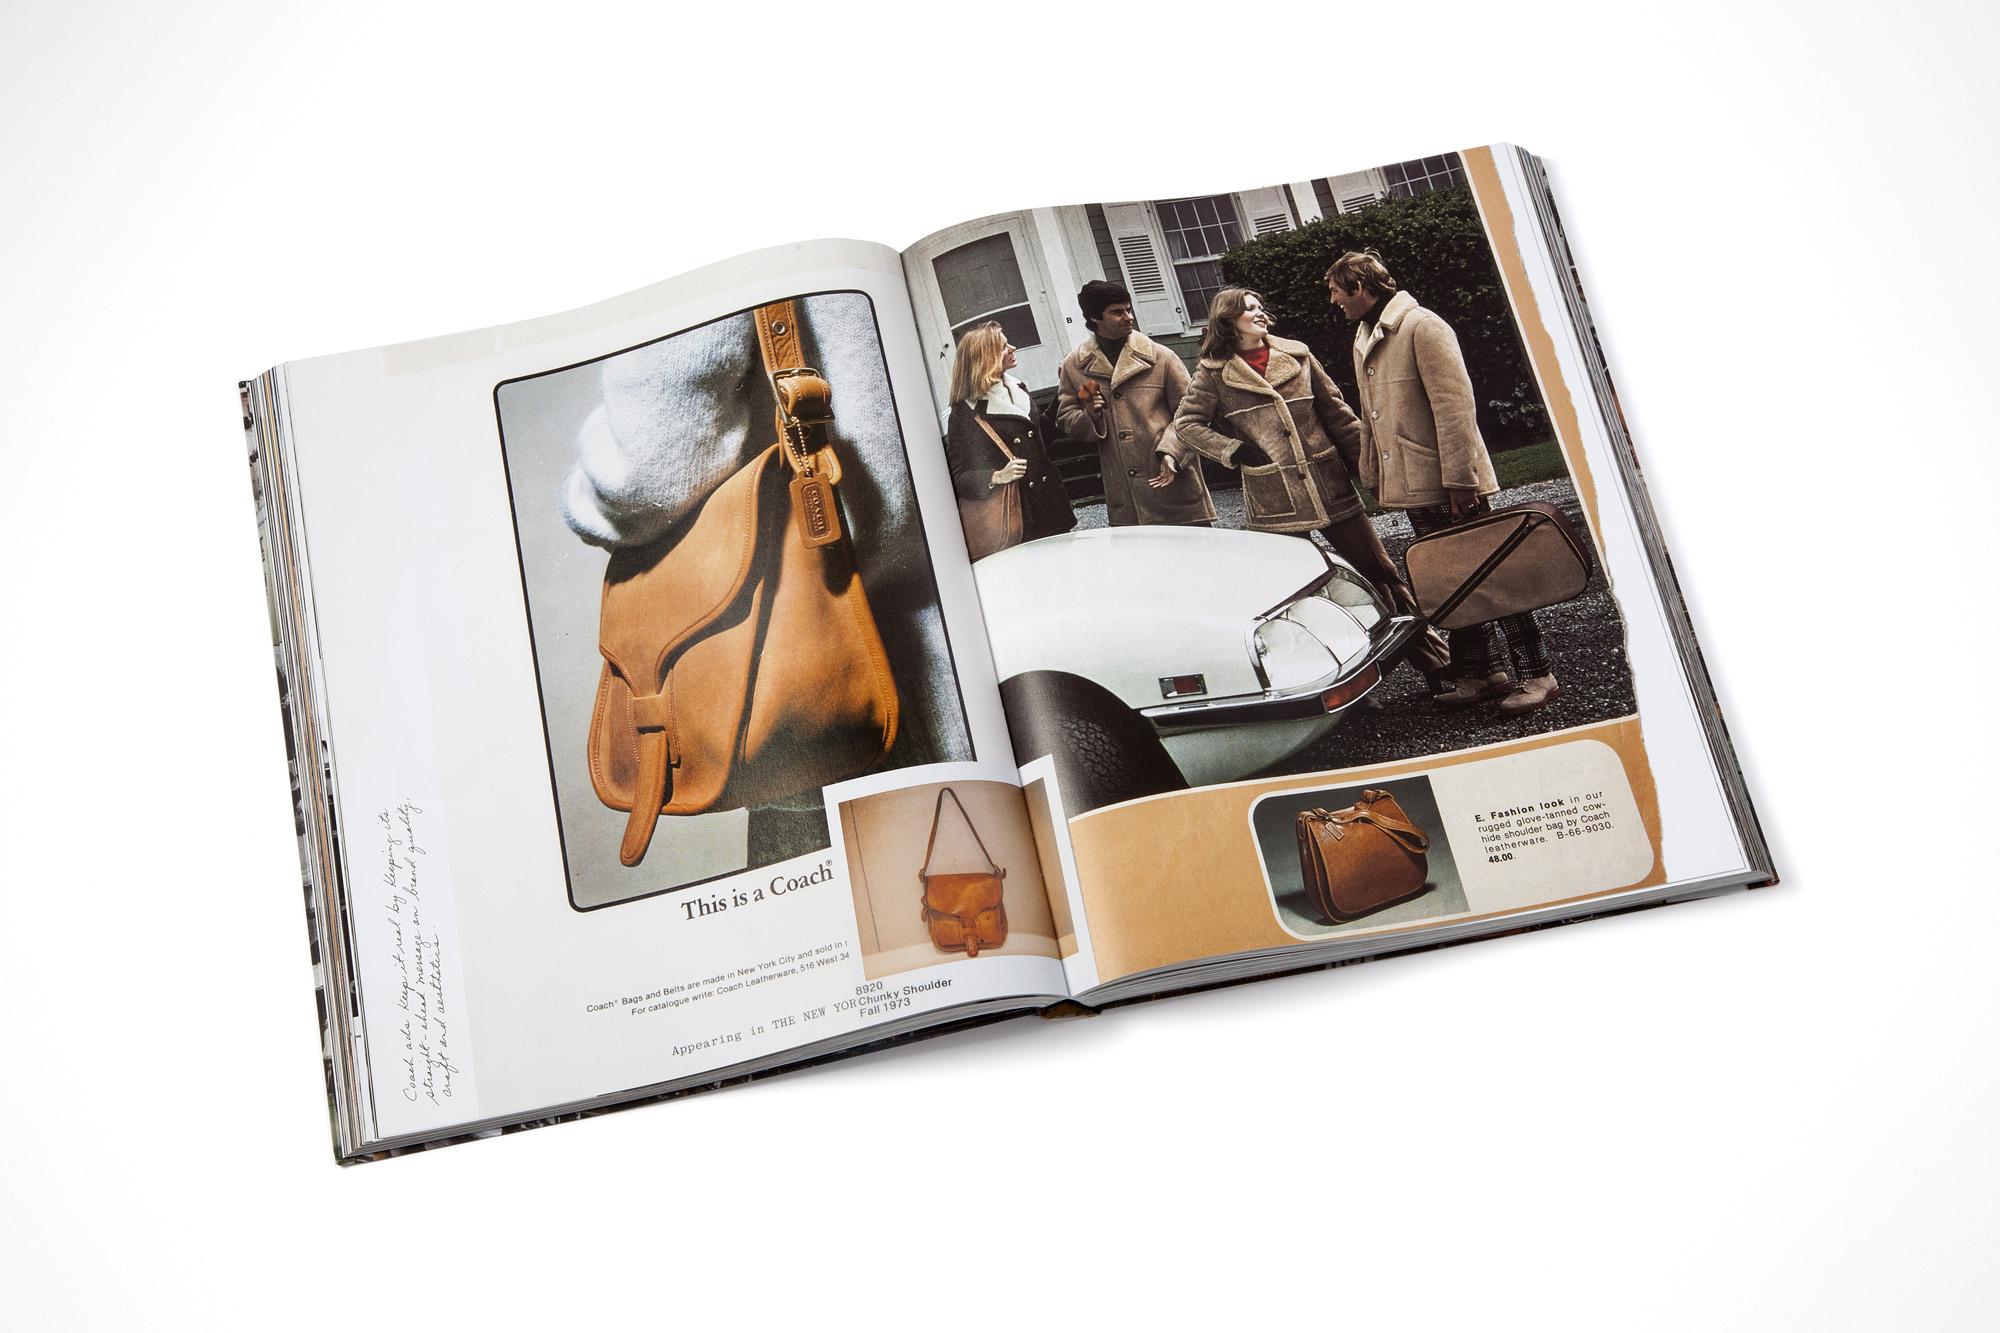 coach-75-years-cool-book-the-impression-005